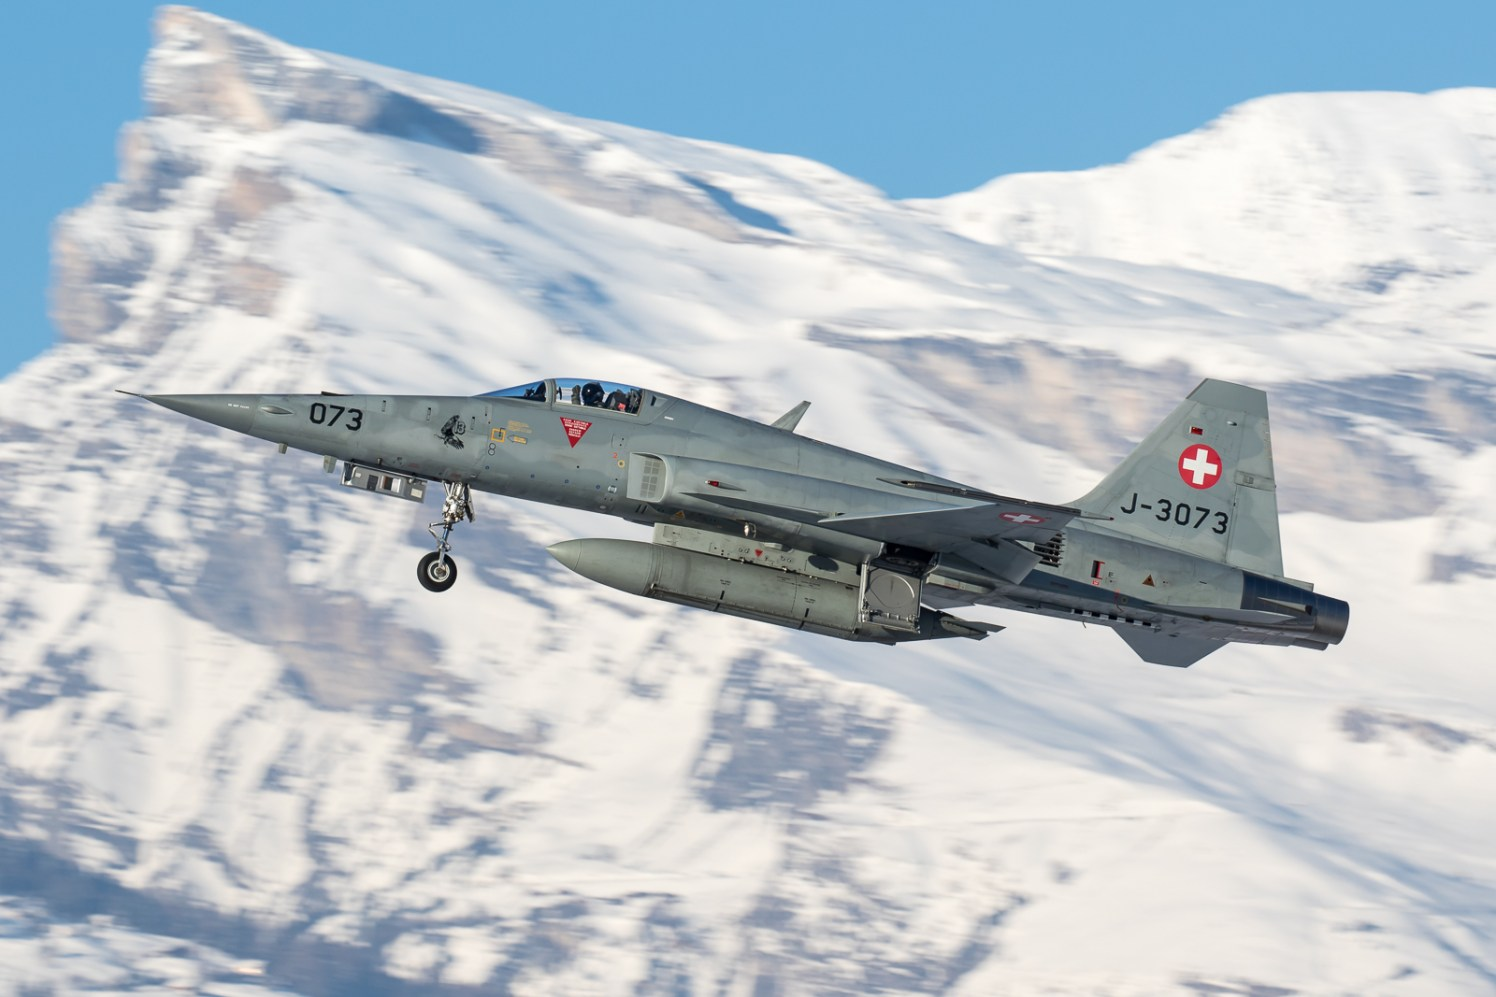 © Adam Duffield - F-5E J-3073 departs from Sion for another training mission - World Economic Forum Air Policing